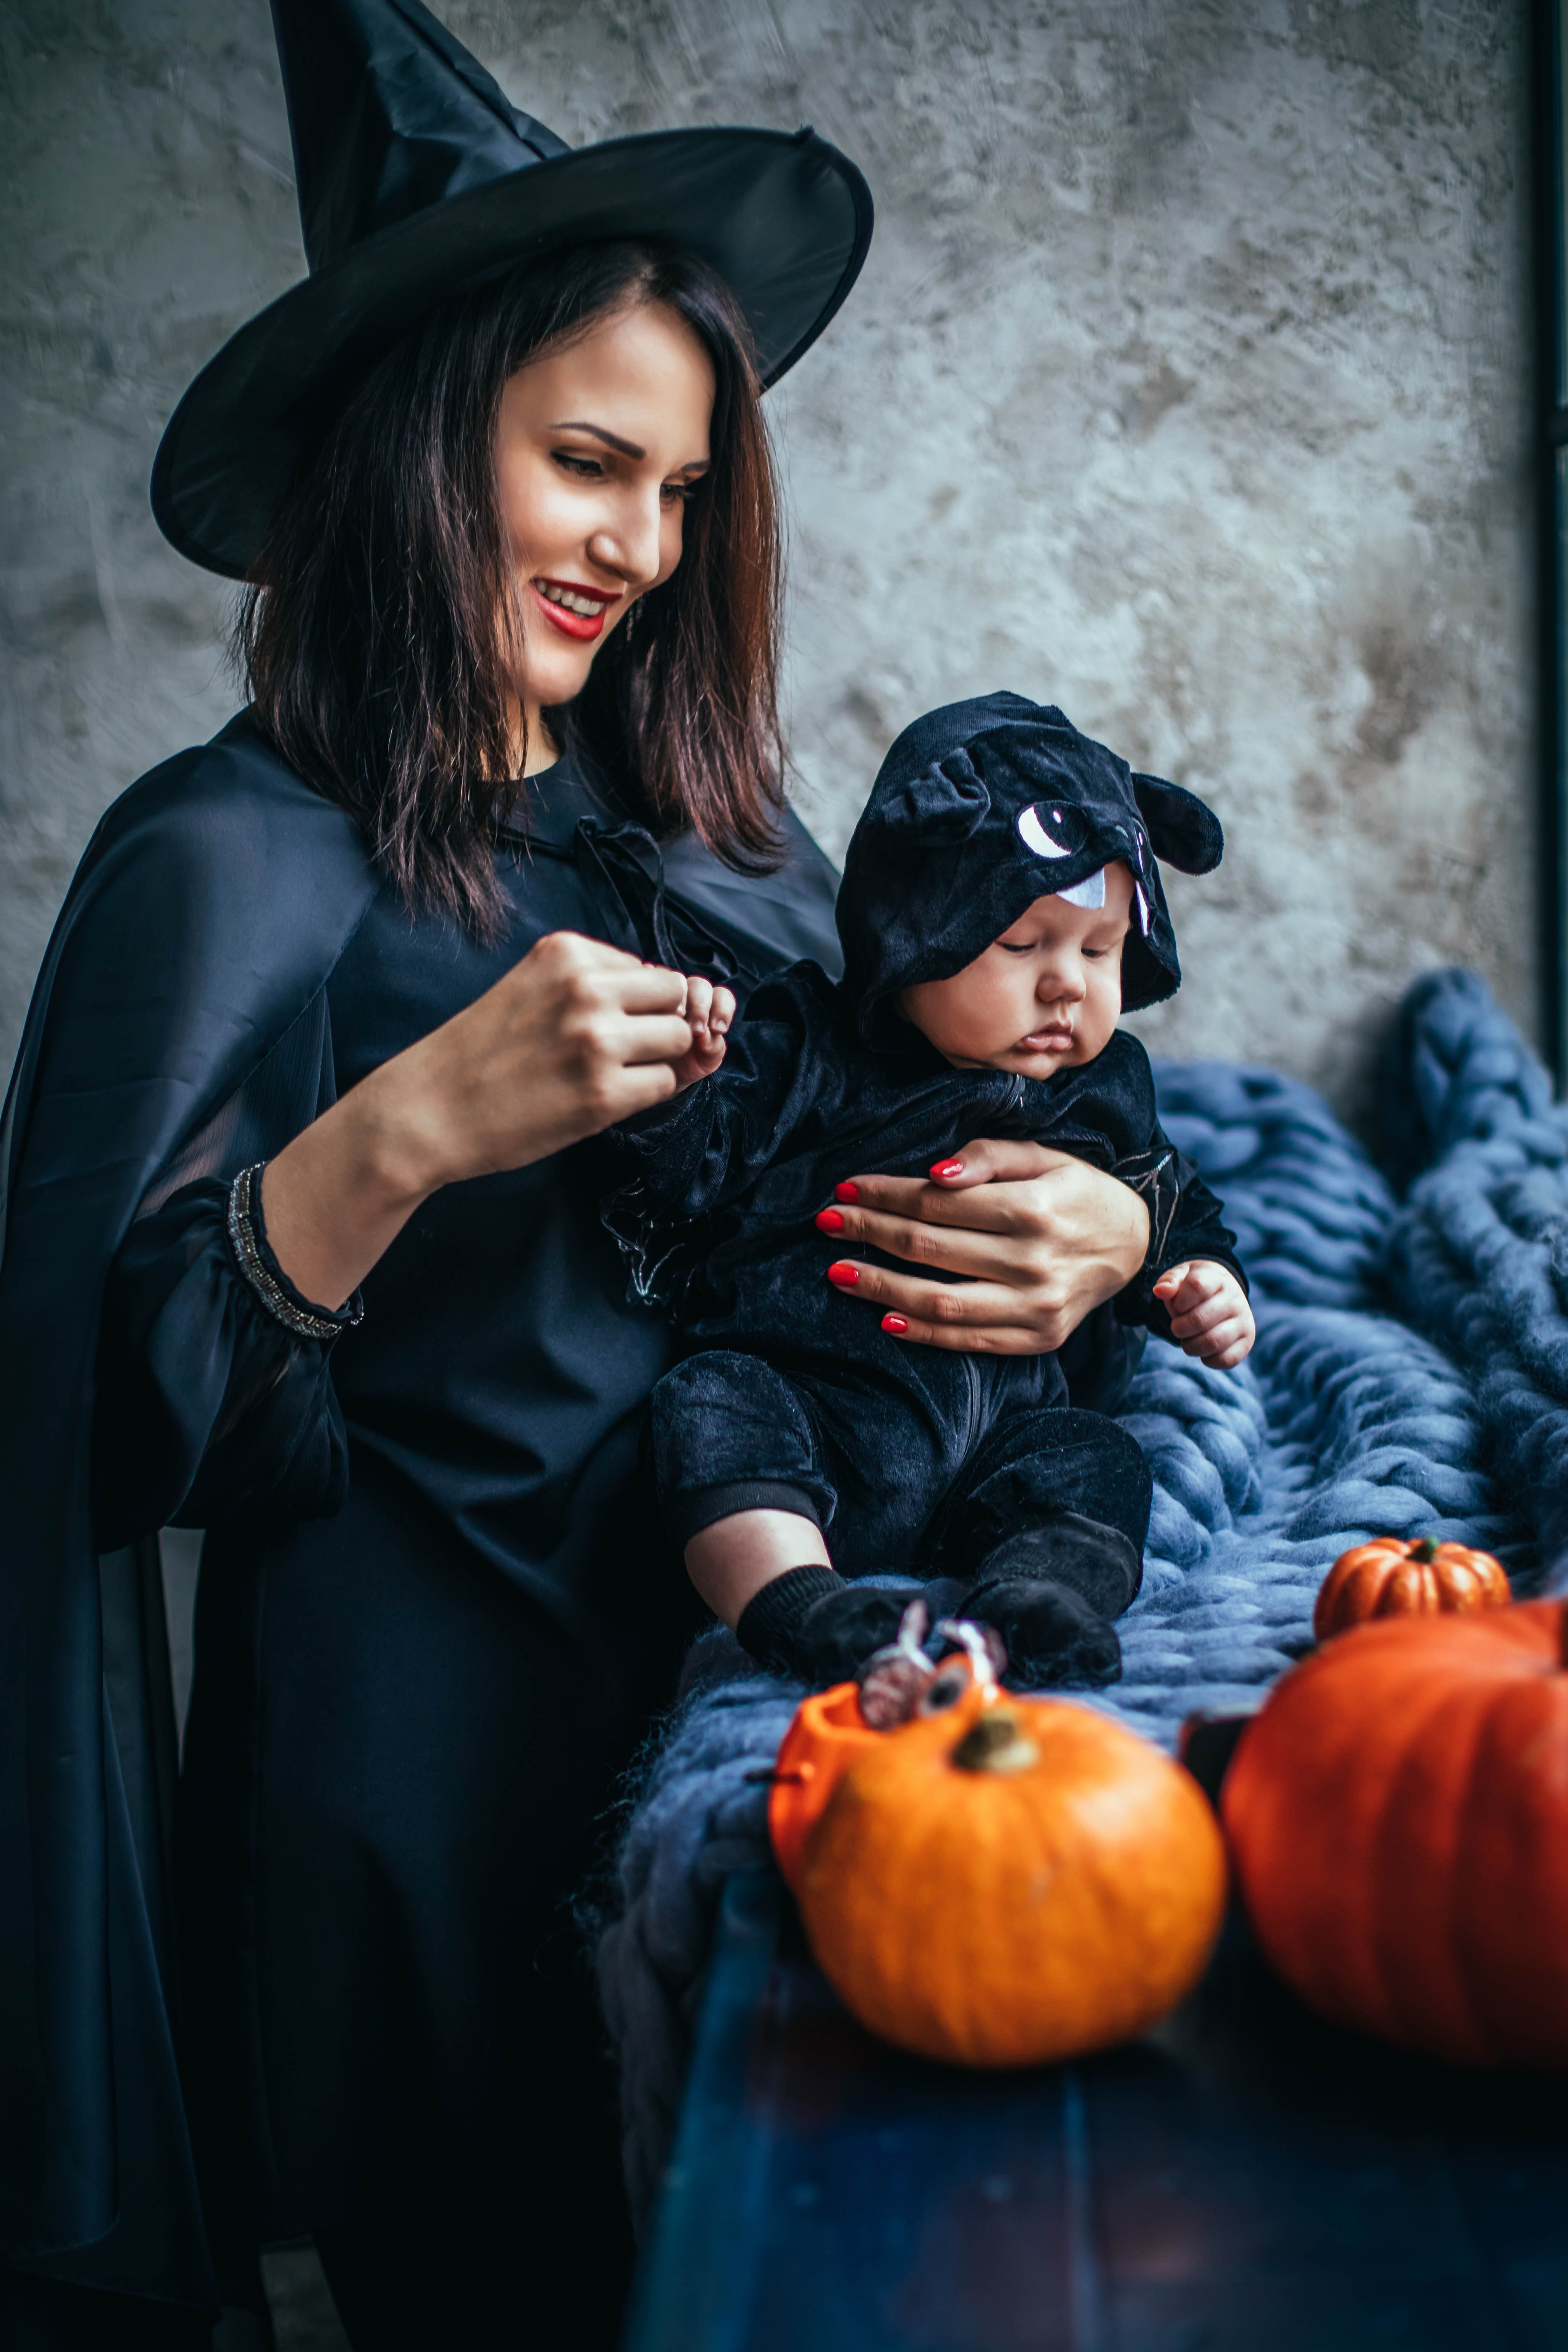 The do's and don'ts of Hallowe'en